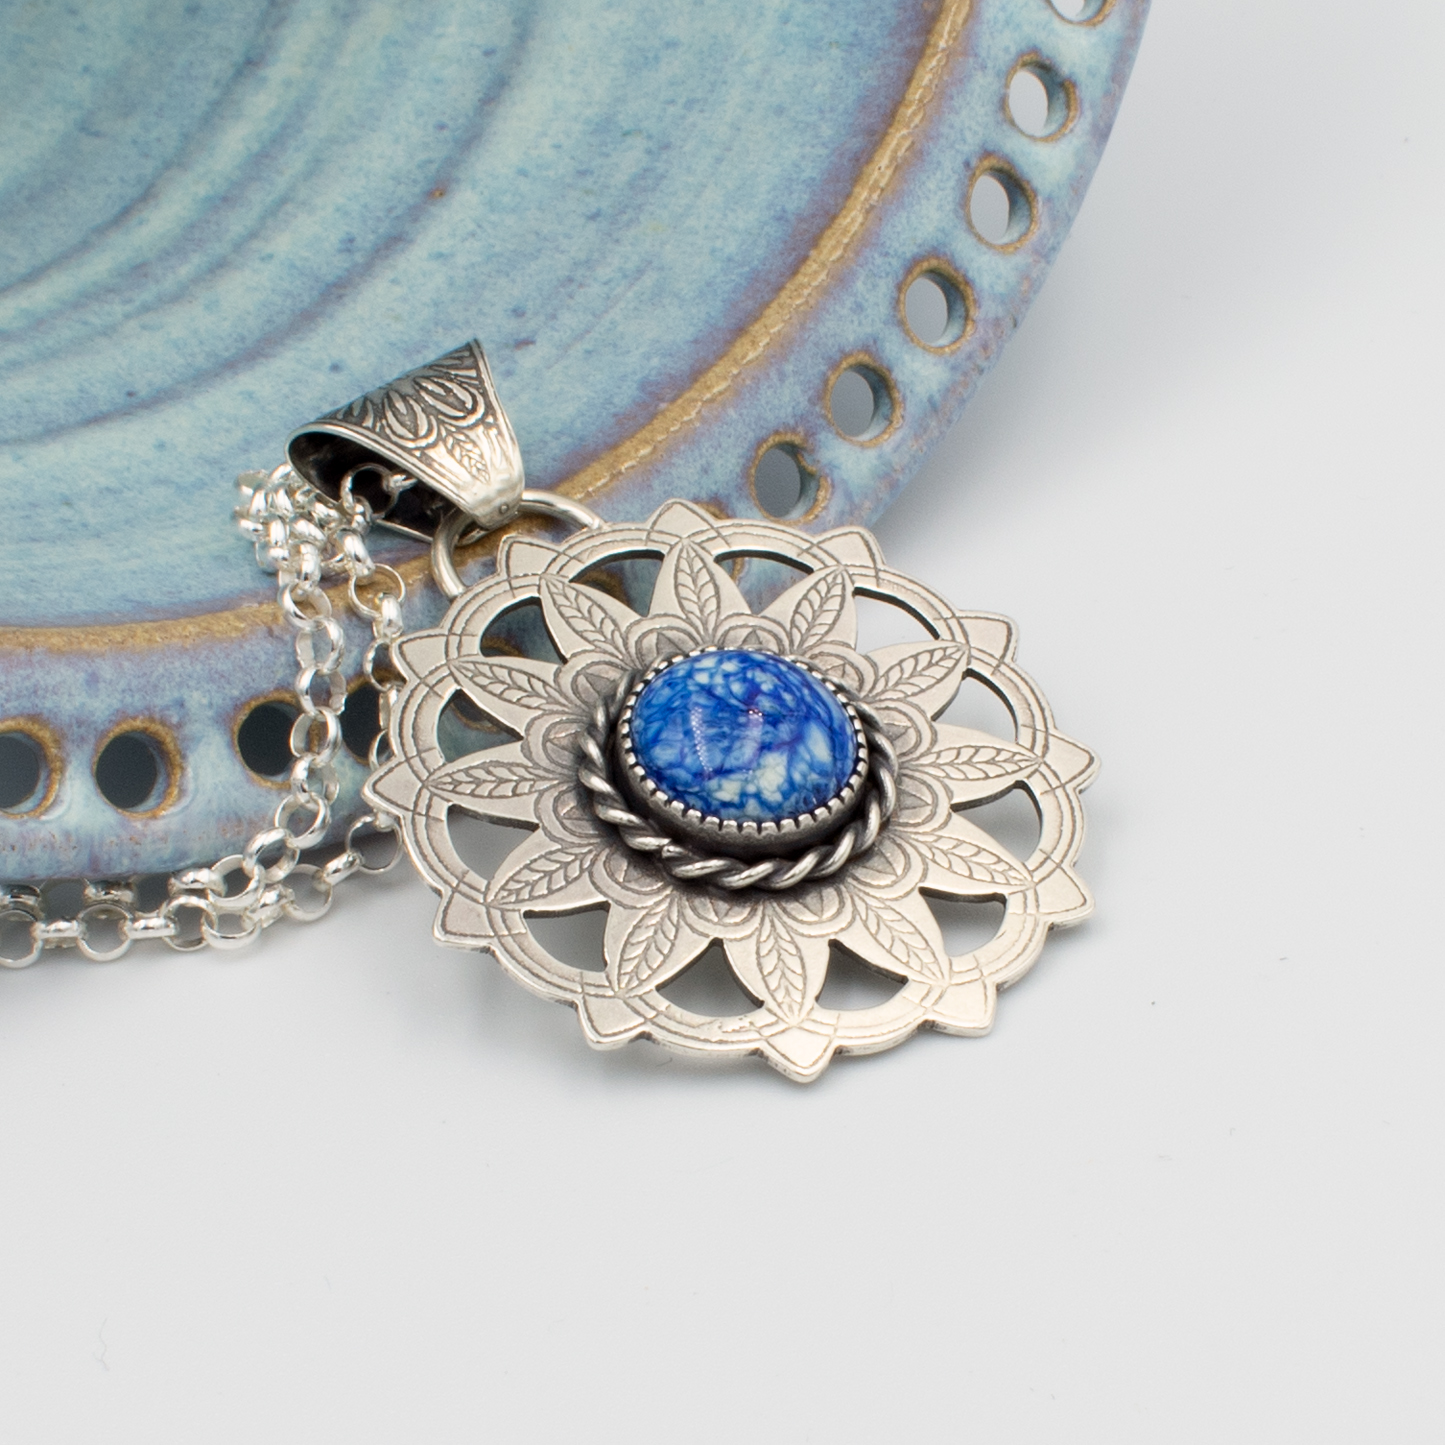 Dutch Delft Blue glass and silver necklace